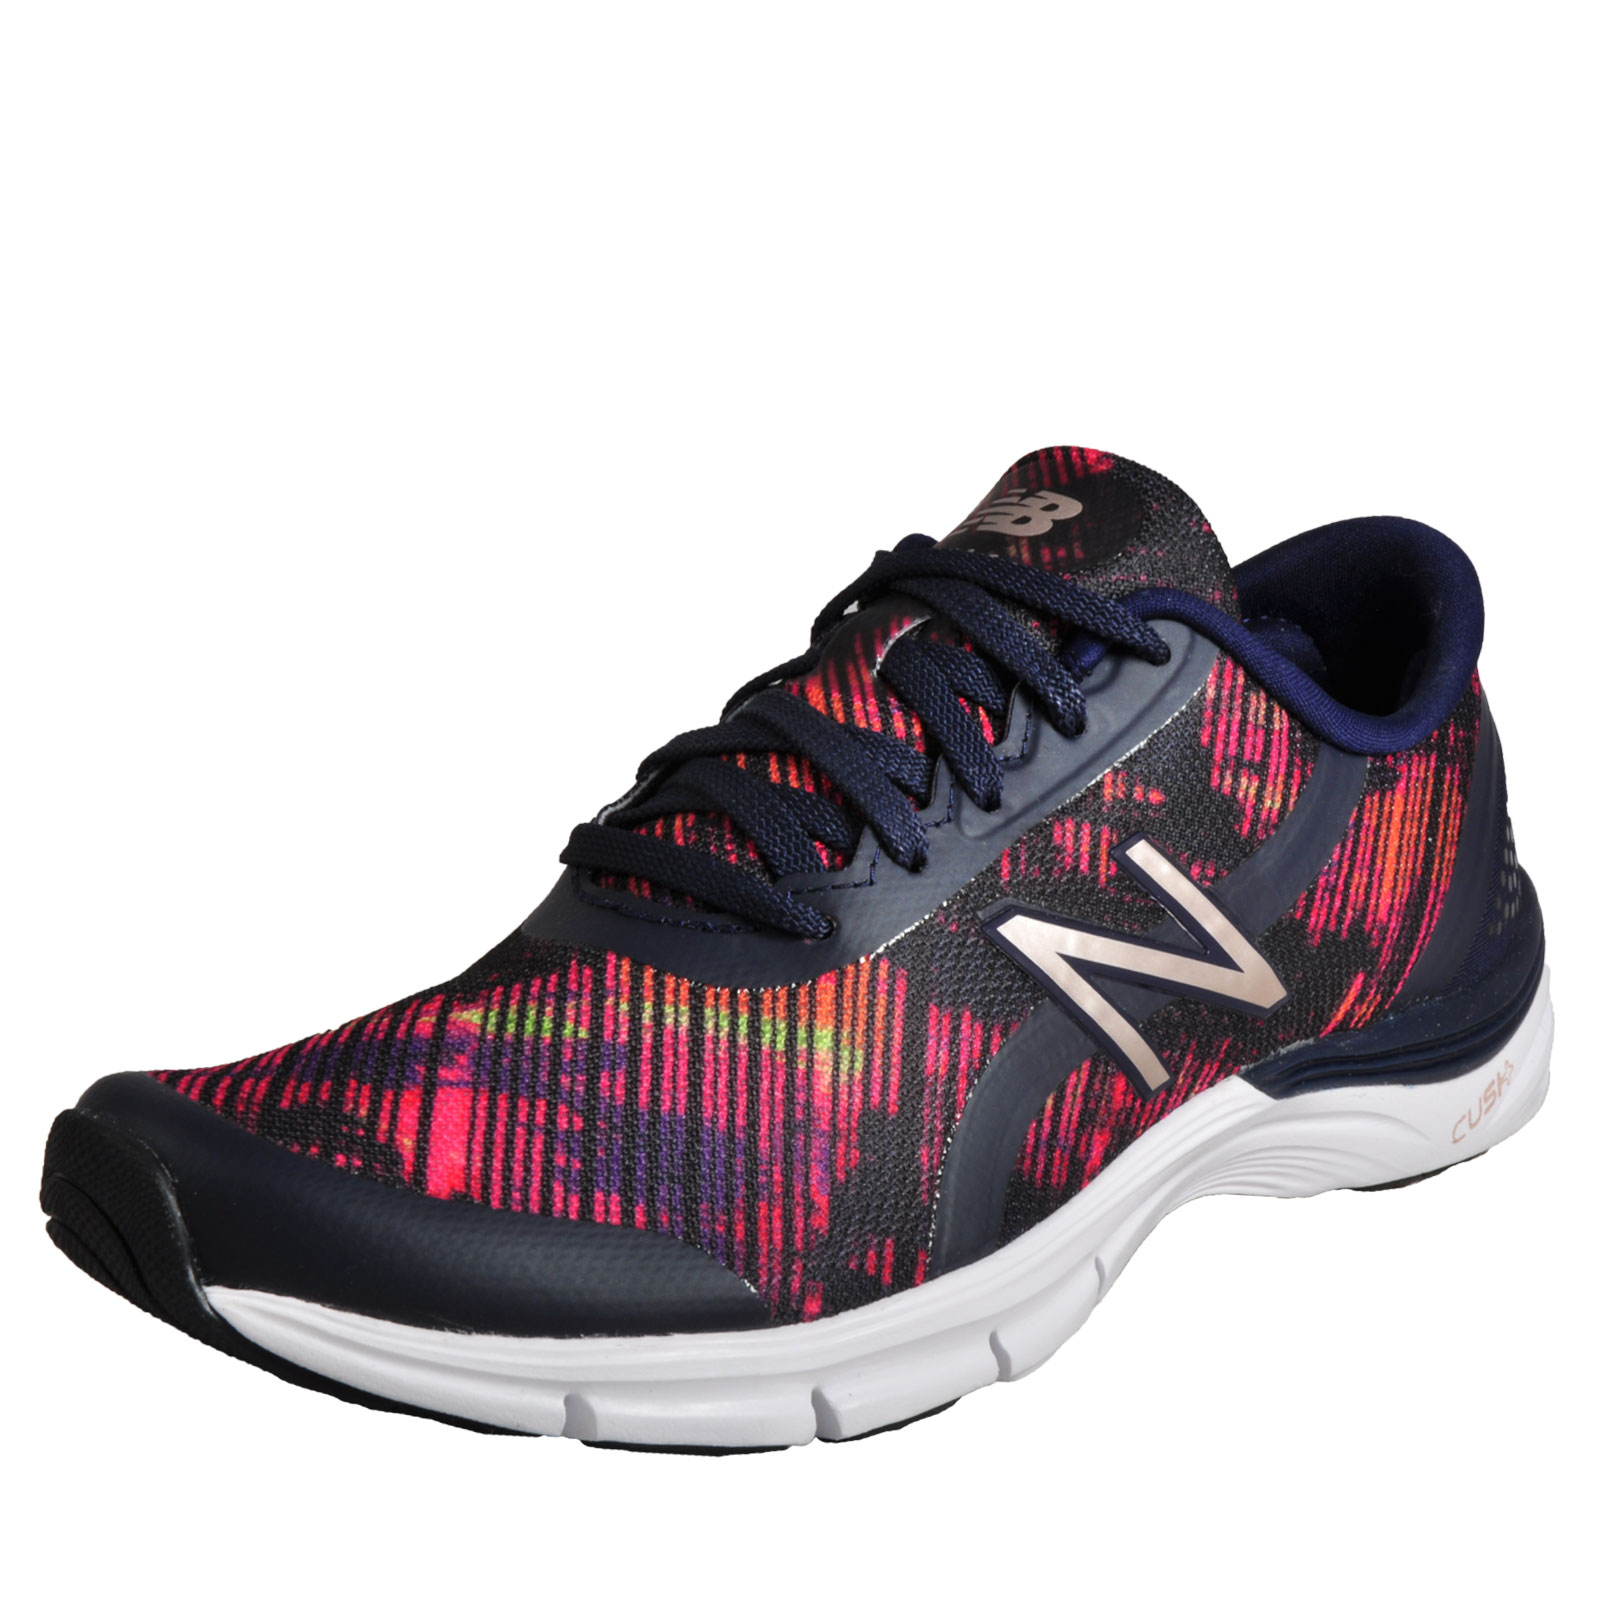 3bc7468b52df Details about New Balance WX 711 Cush+ Womens Running Shoes Fitness Gym  Workout Trainers Navy